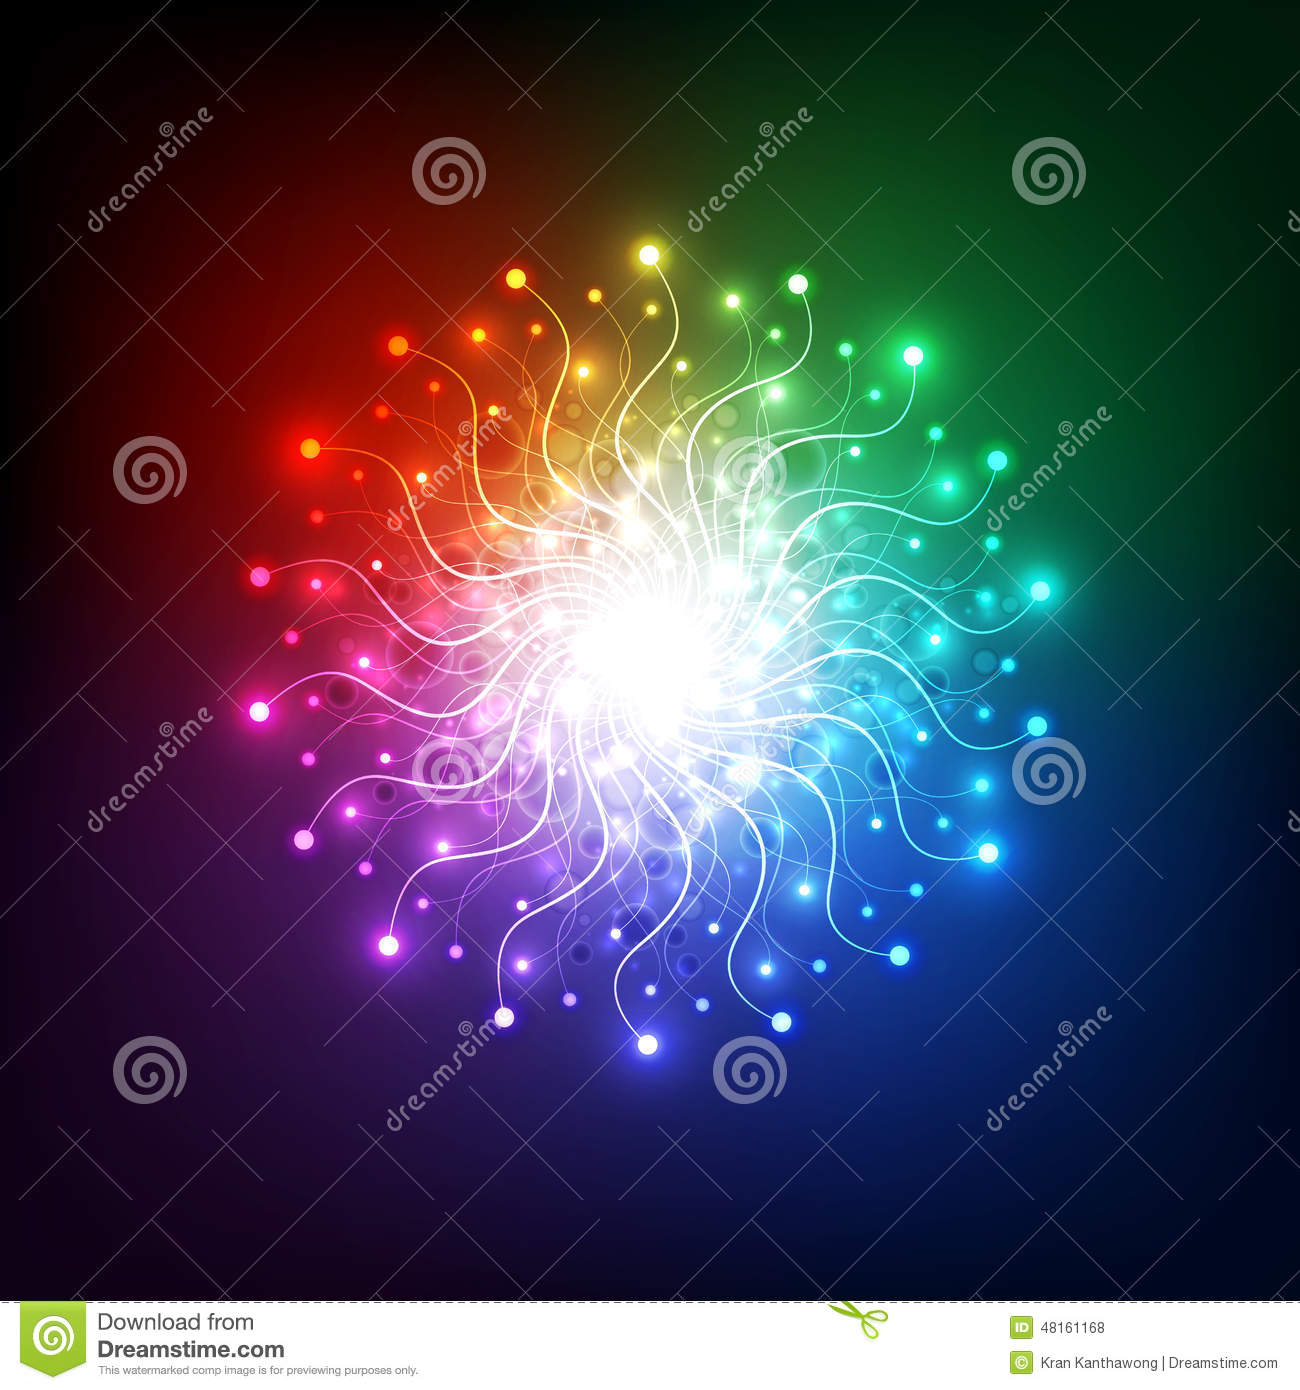 chakra map with Stock Illustration Abstract Aura Light  Work Tech Vector Background Illustration Image48161168 on 2212113022 also Paddle And Pedal Bears Ears National Monument additionally Stock Photography Ganesha Painting Hindu God Multicolor Image34252542 in addition Newsletter411 further Naruto.